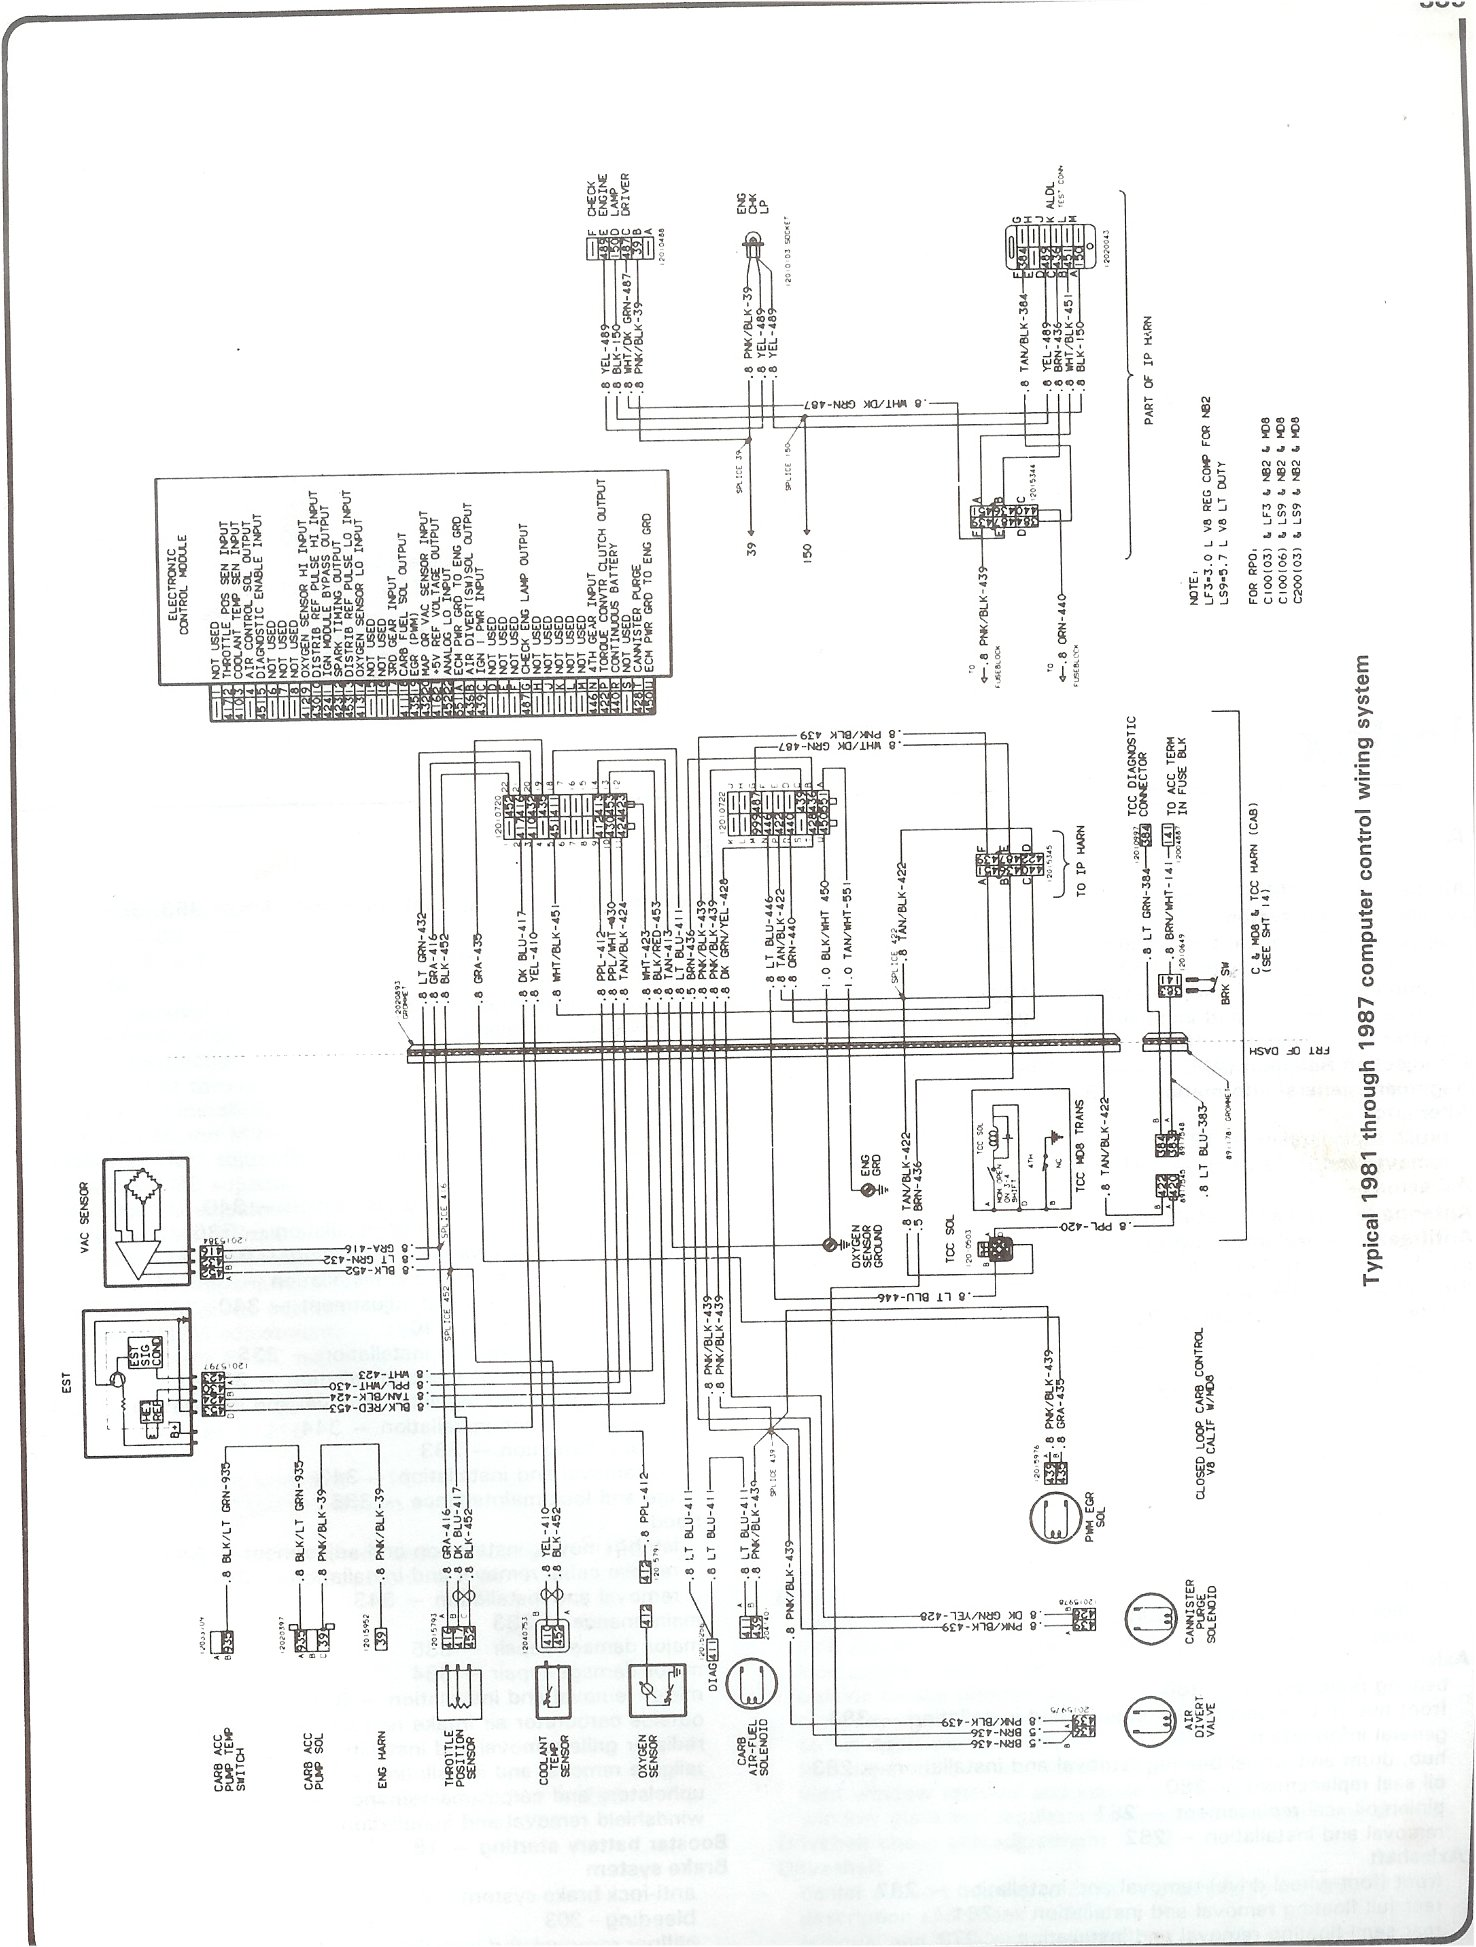 complete 73 87 wiring diagrams rh forum 73 87chevytrucks com 1990 chevy 2500 starter wiring diagram 1990 chevy 2500 fuel pump wiring diagram